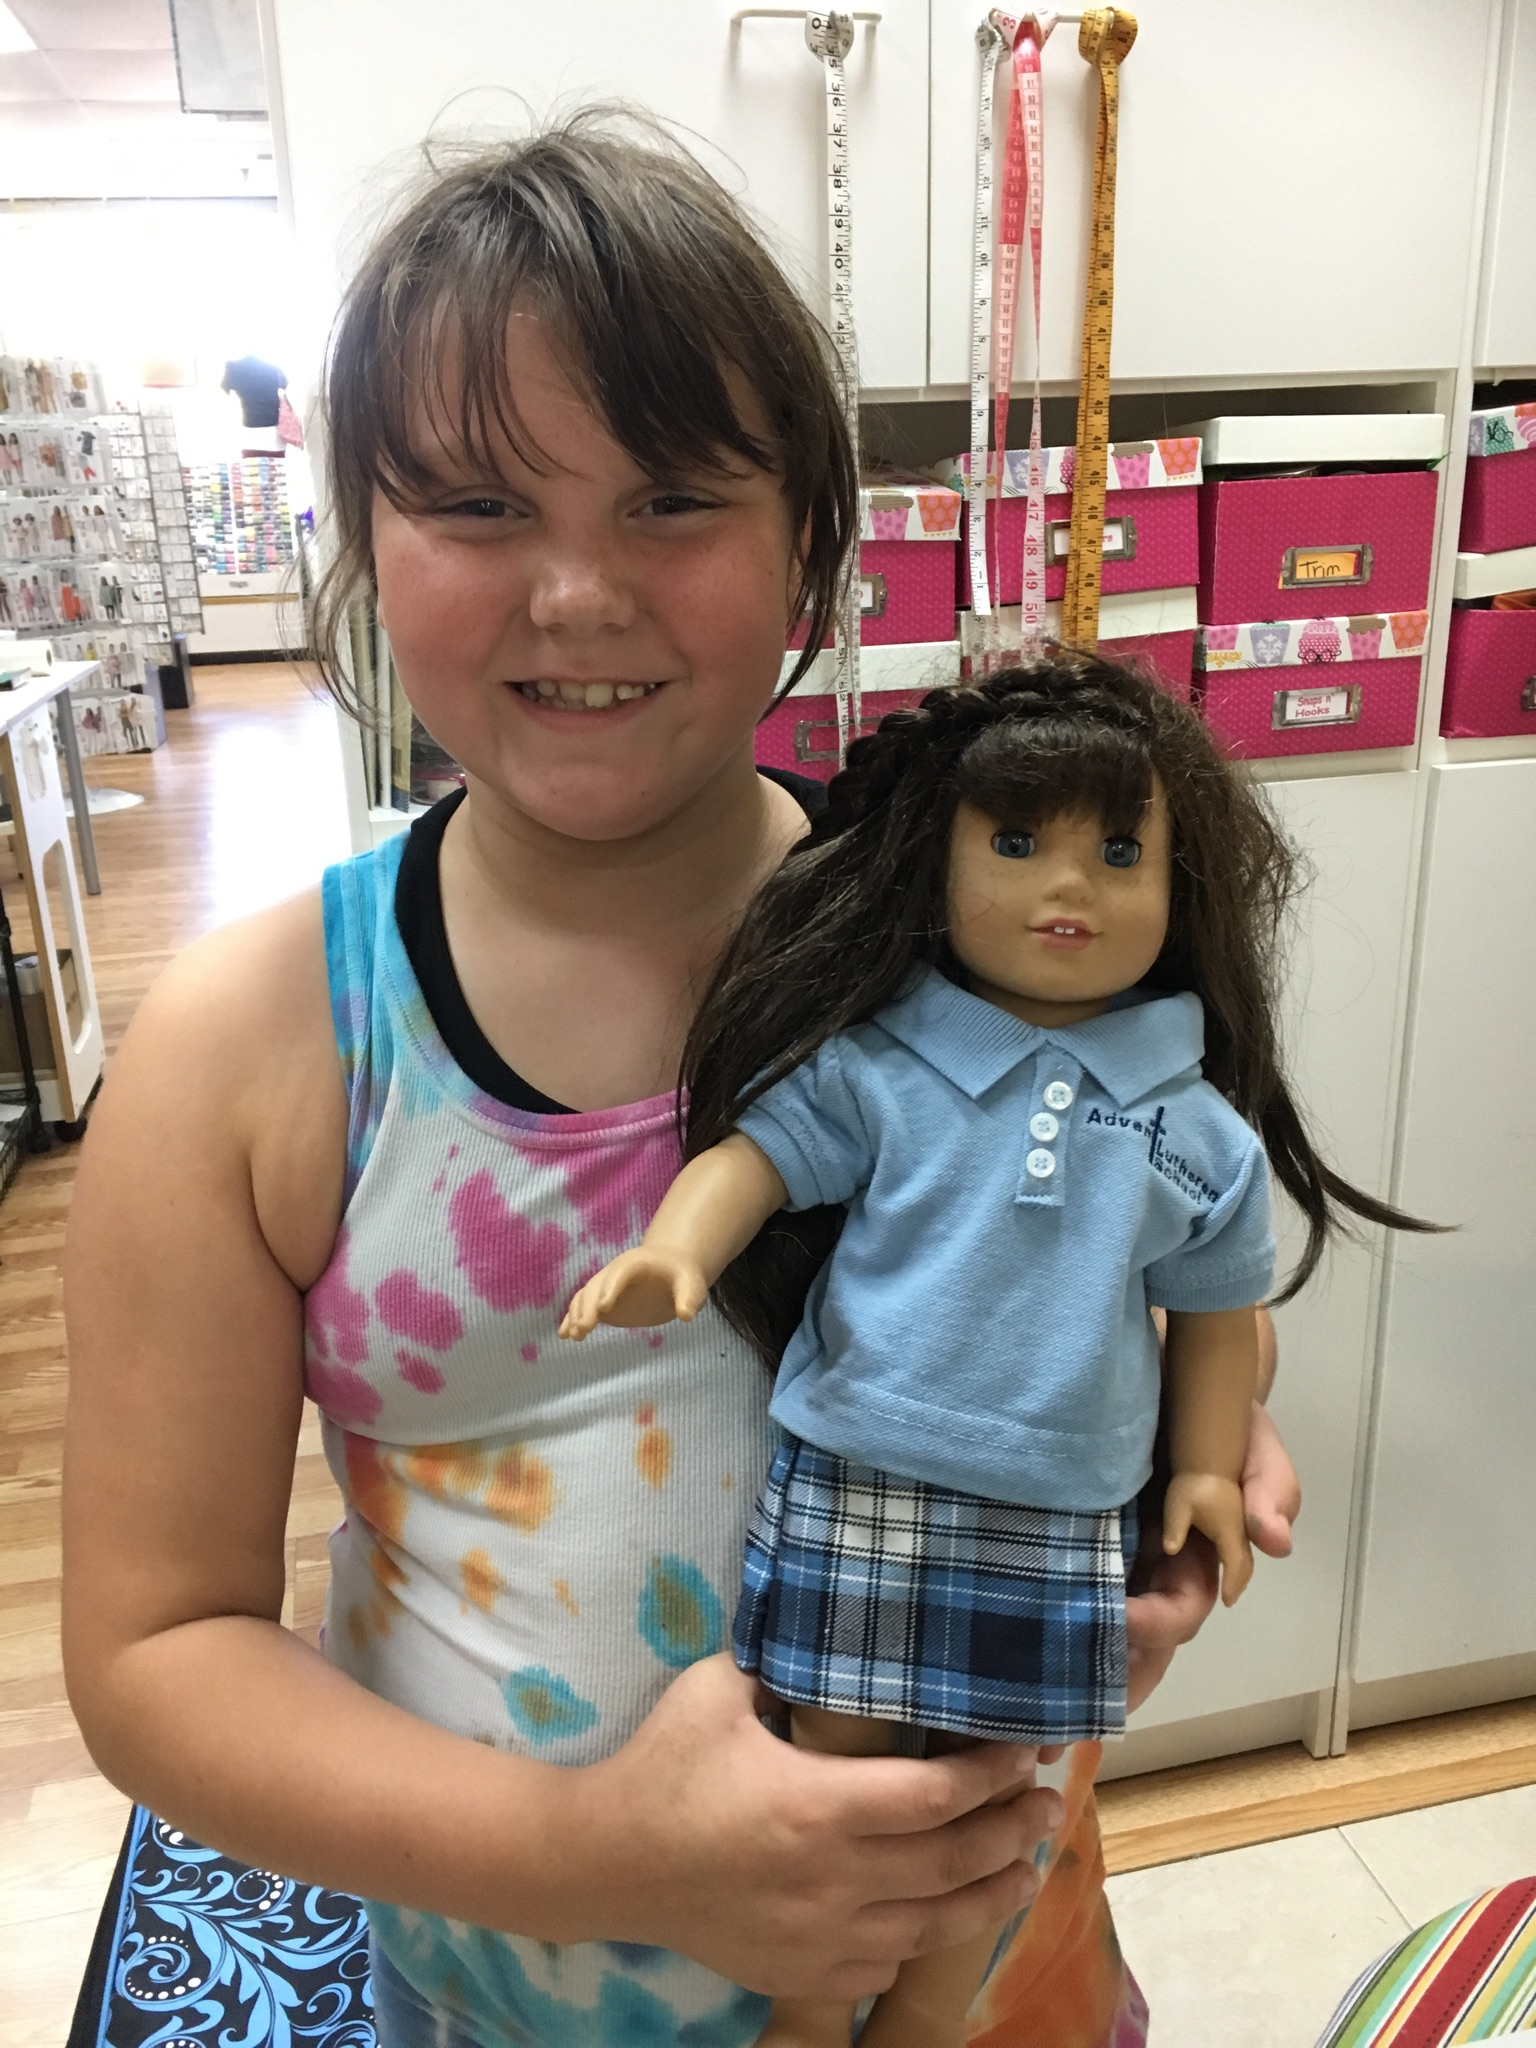 AmyGrace made this uniform for her American Girl doll from her own outgrown uniform.